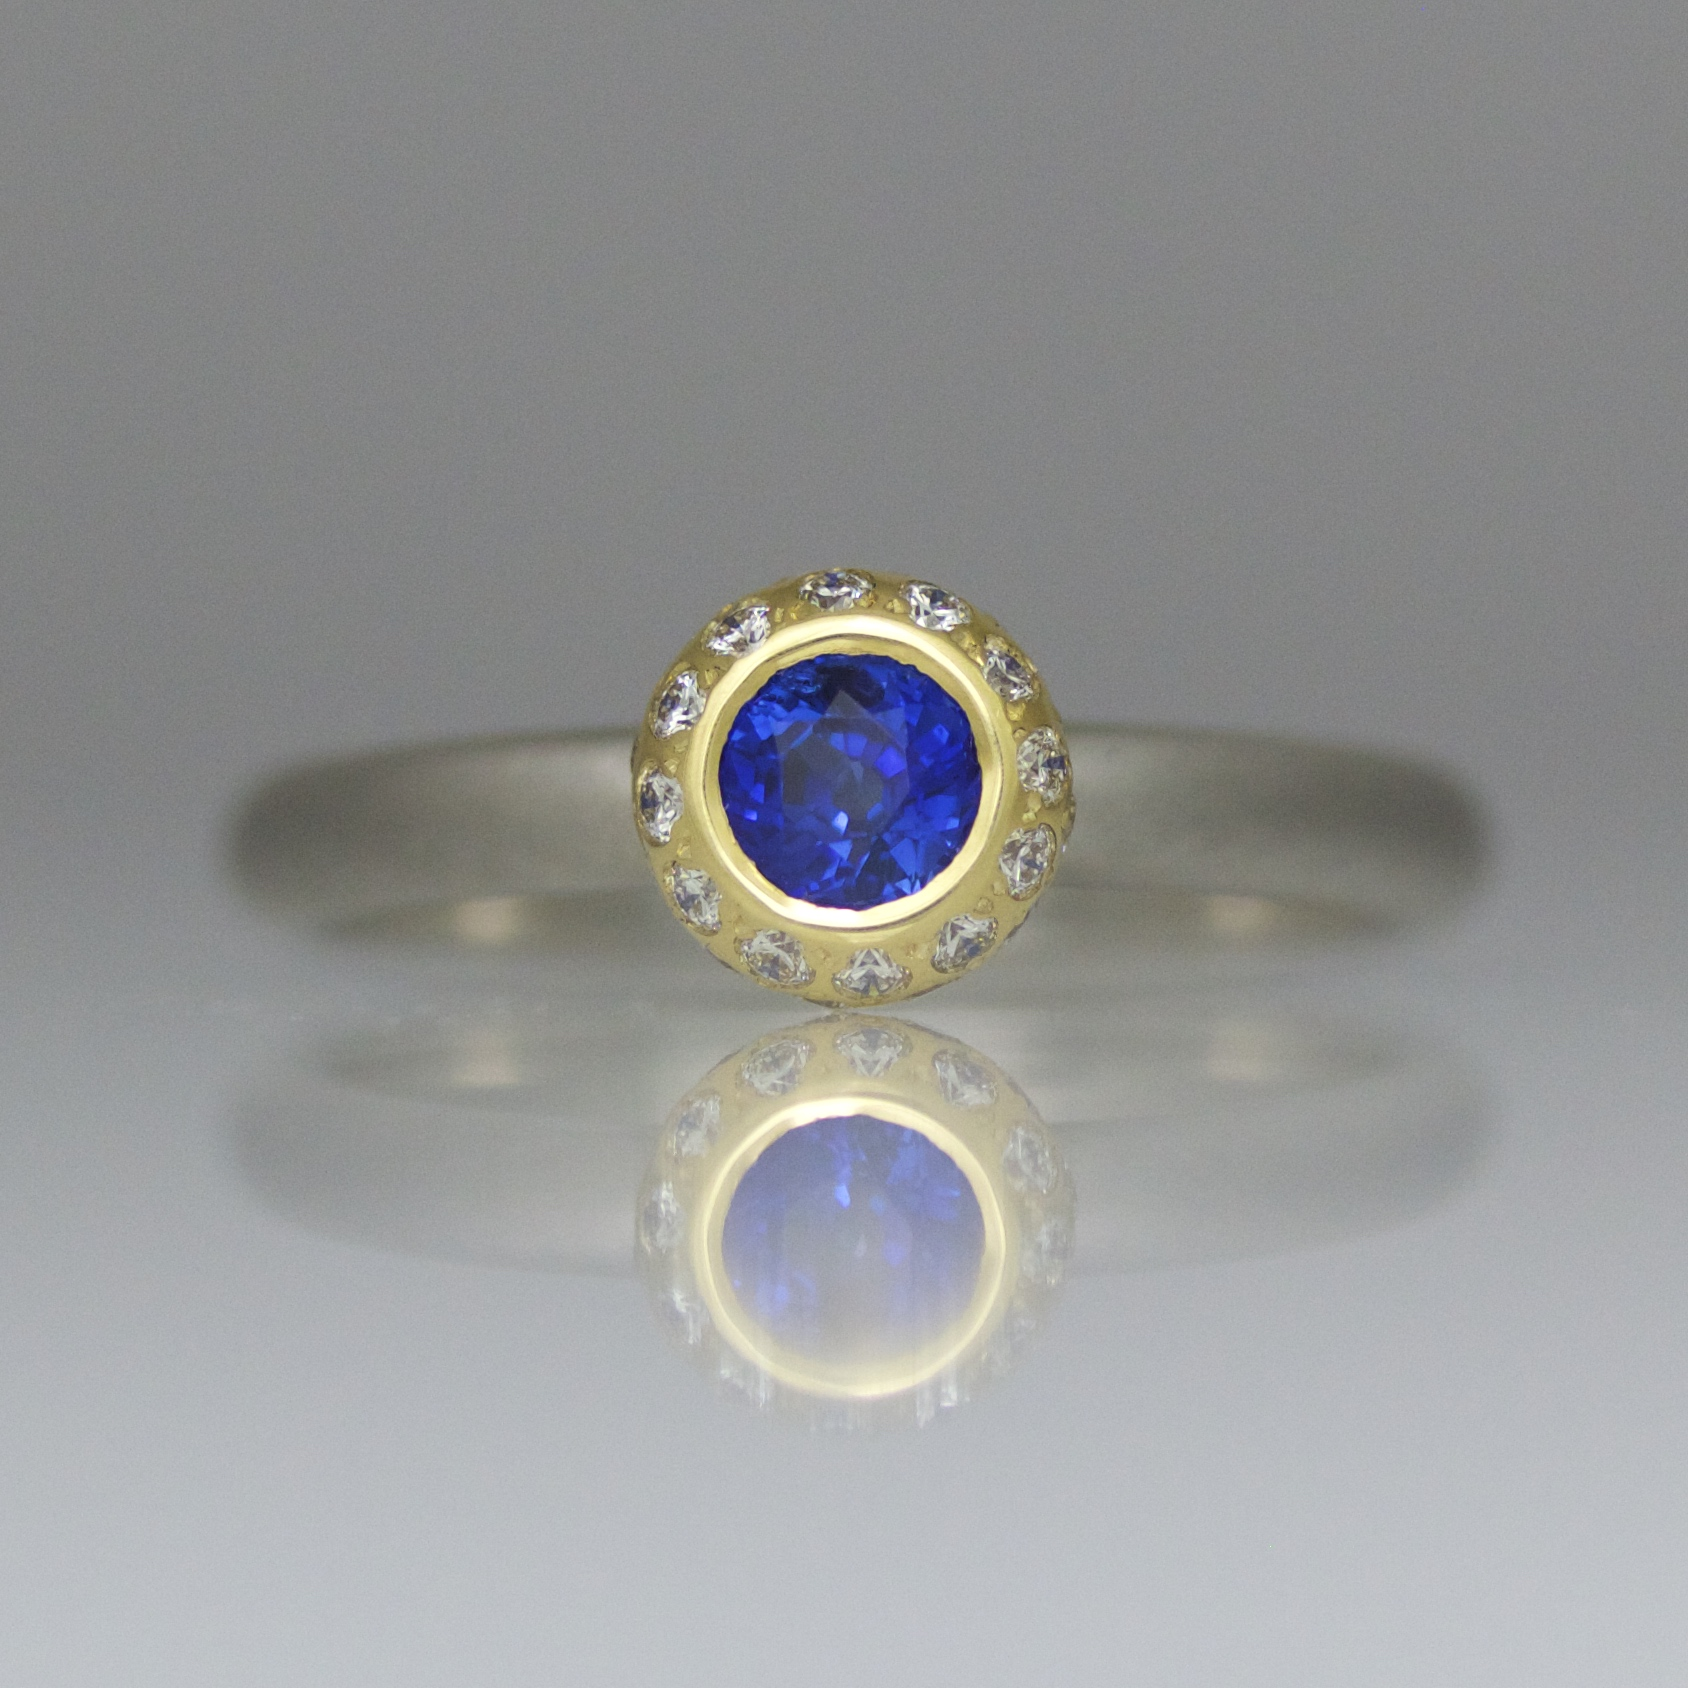 searle product co rings sapphire and saffire ring b rainbow